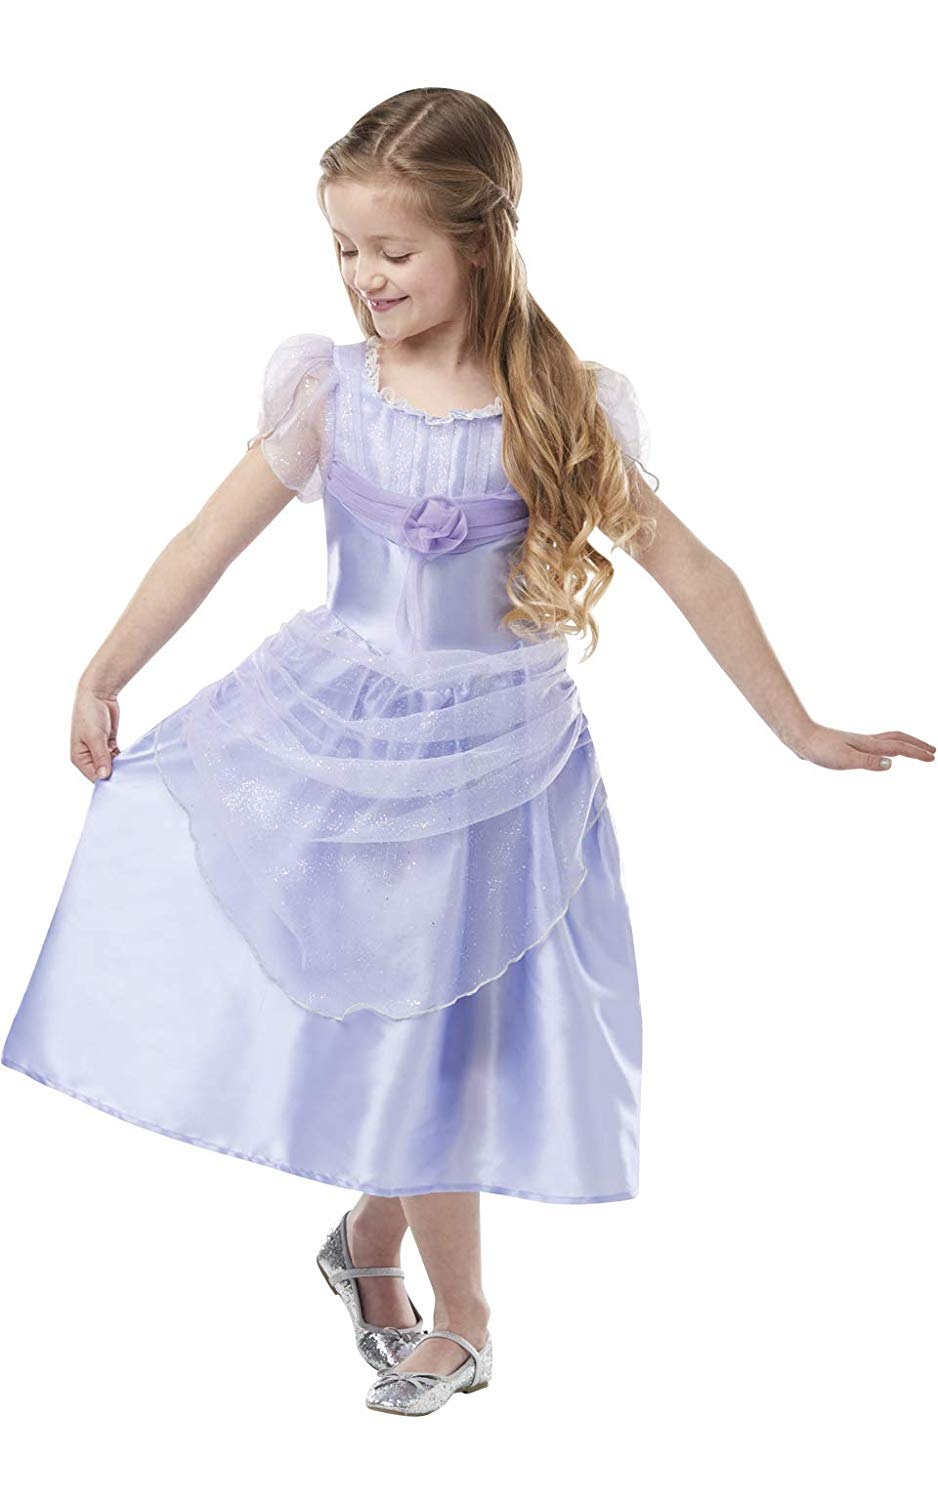 Rubie's Official Disney The Nutcracker Clara Lavender, Child Costume, Large Age 7-8, Height 128 cm